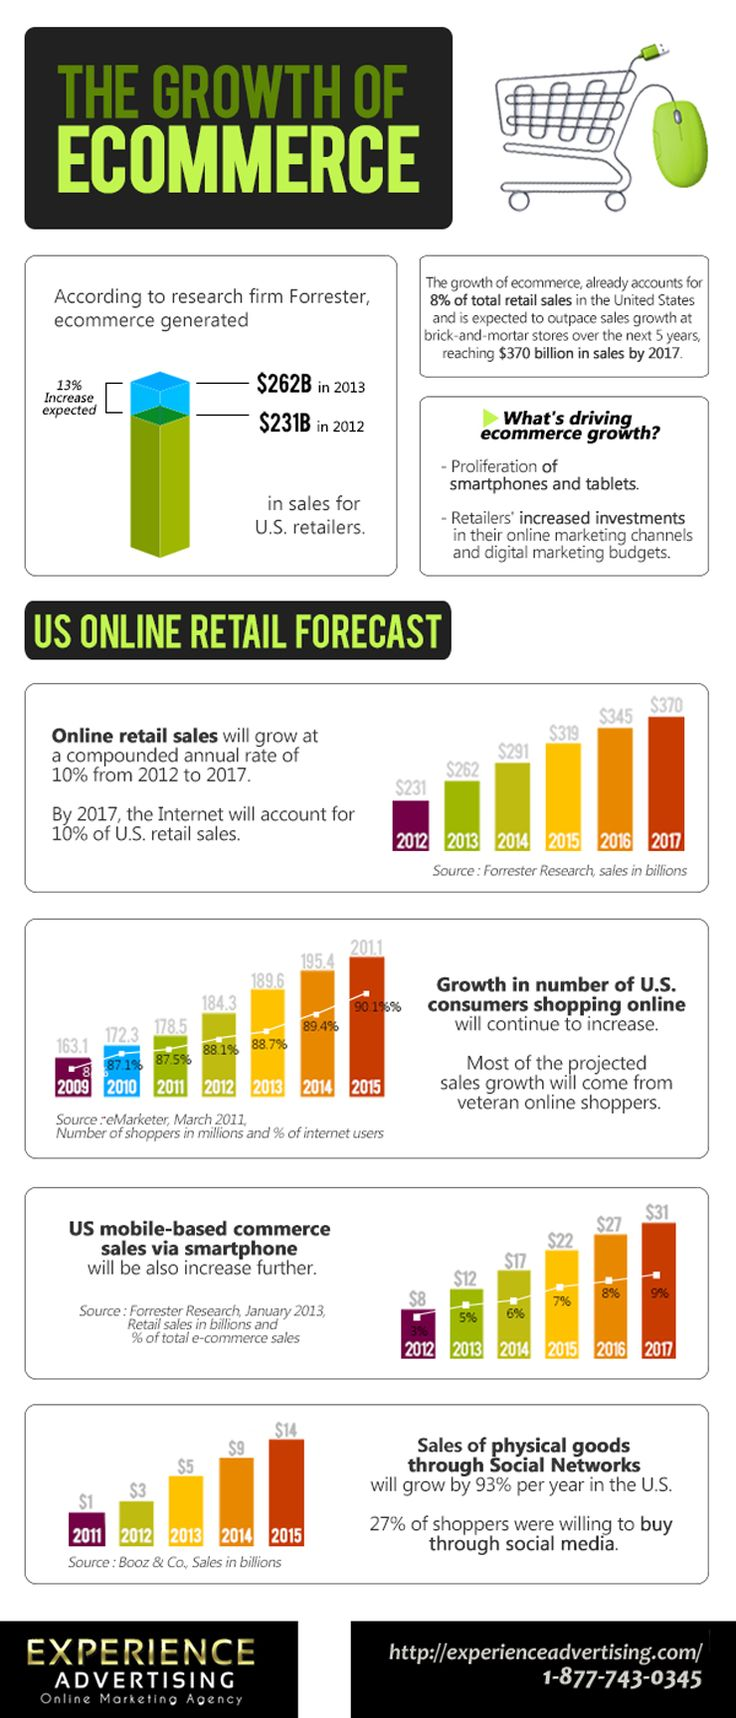 How Is The Growth Of E-Commerce And Sales Through Social Networks? #infographic